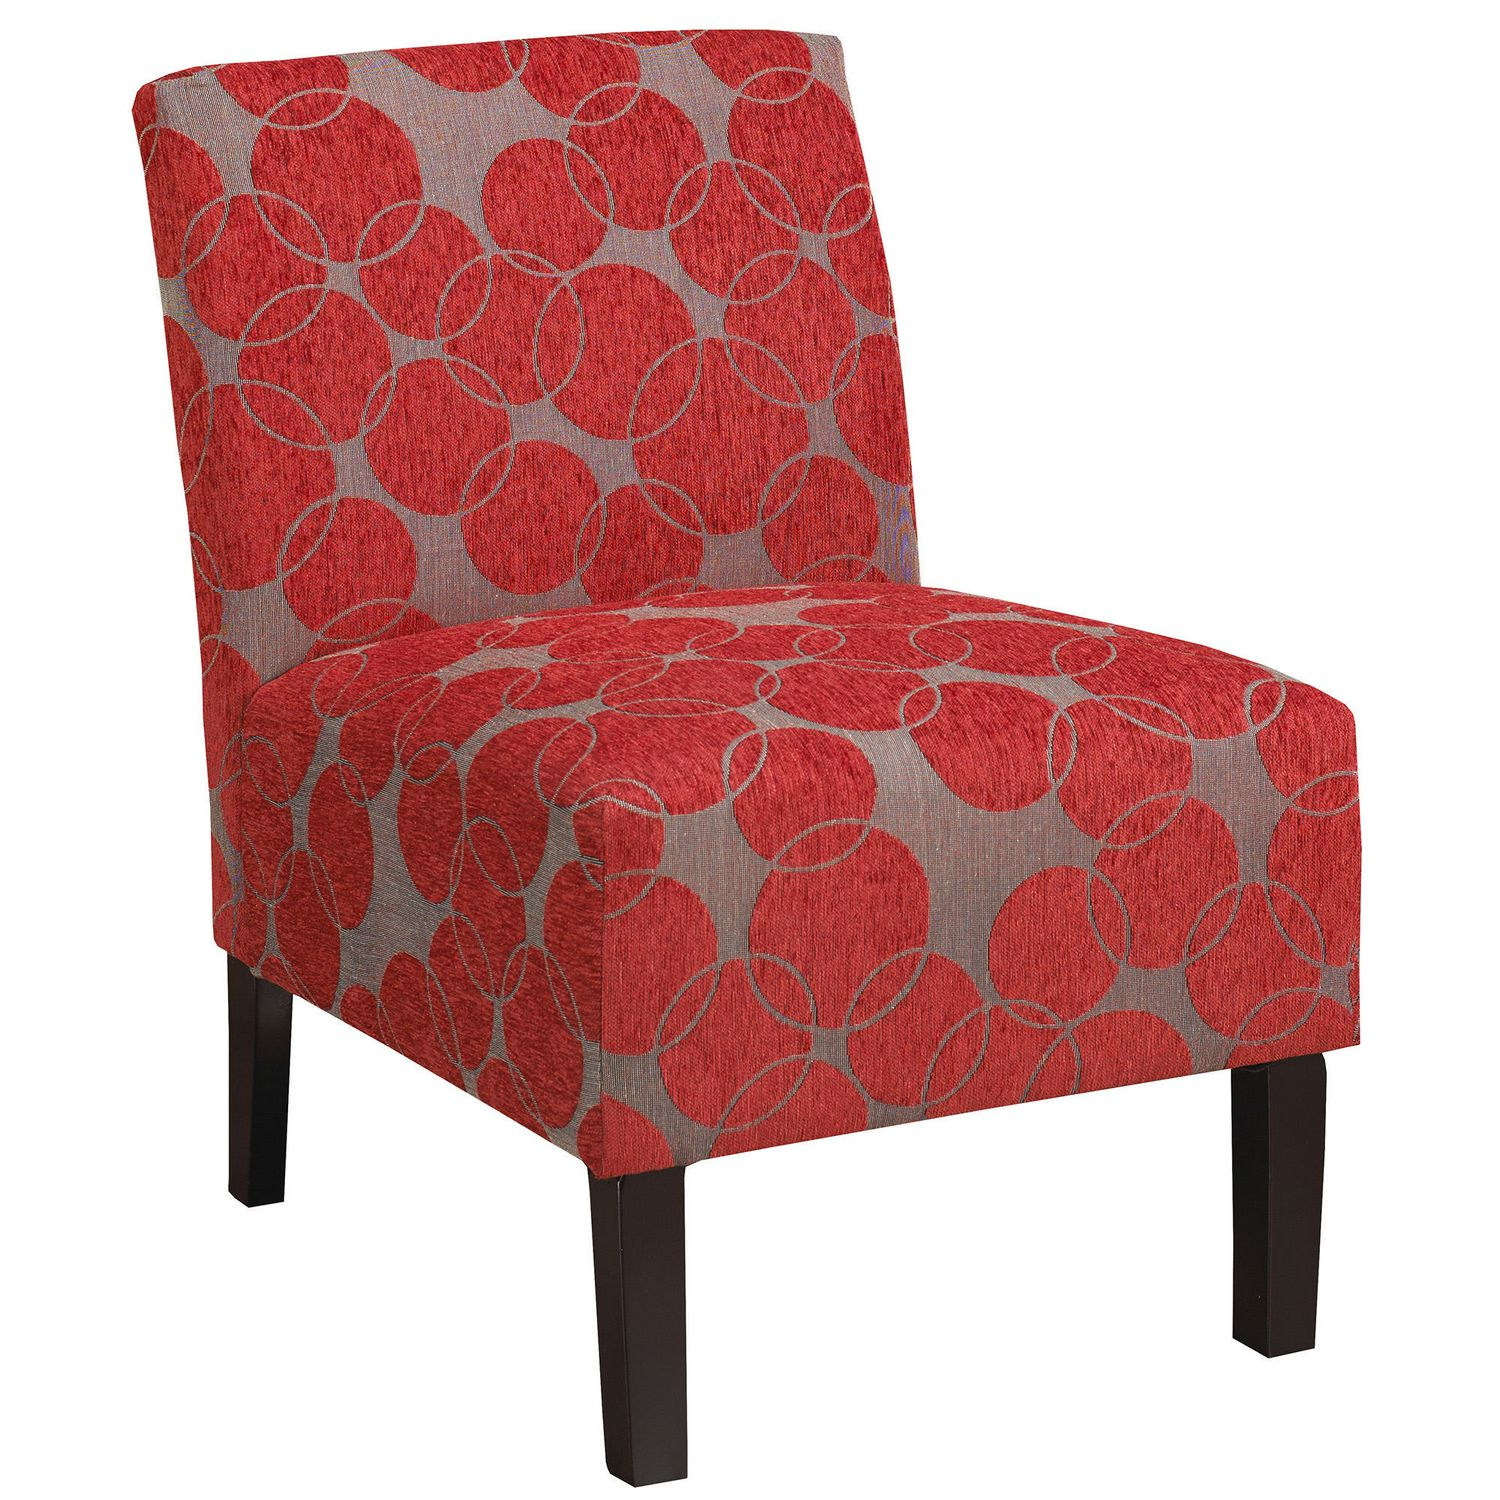 upholstered by magnolia home threshold trim chairsyouth gaines chair accent joanna item chairs height width products youth